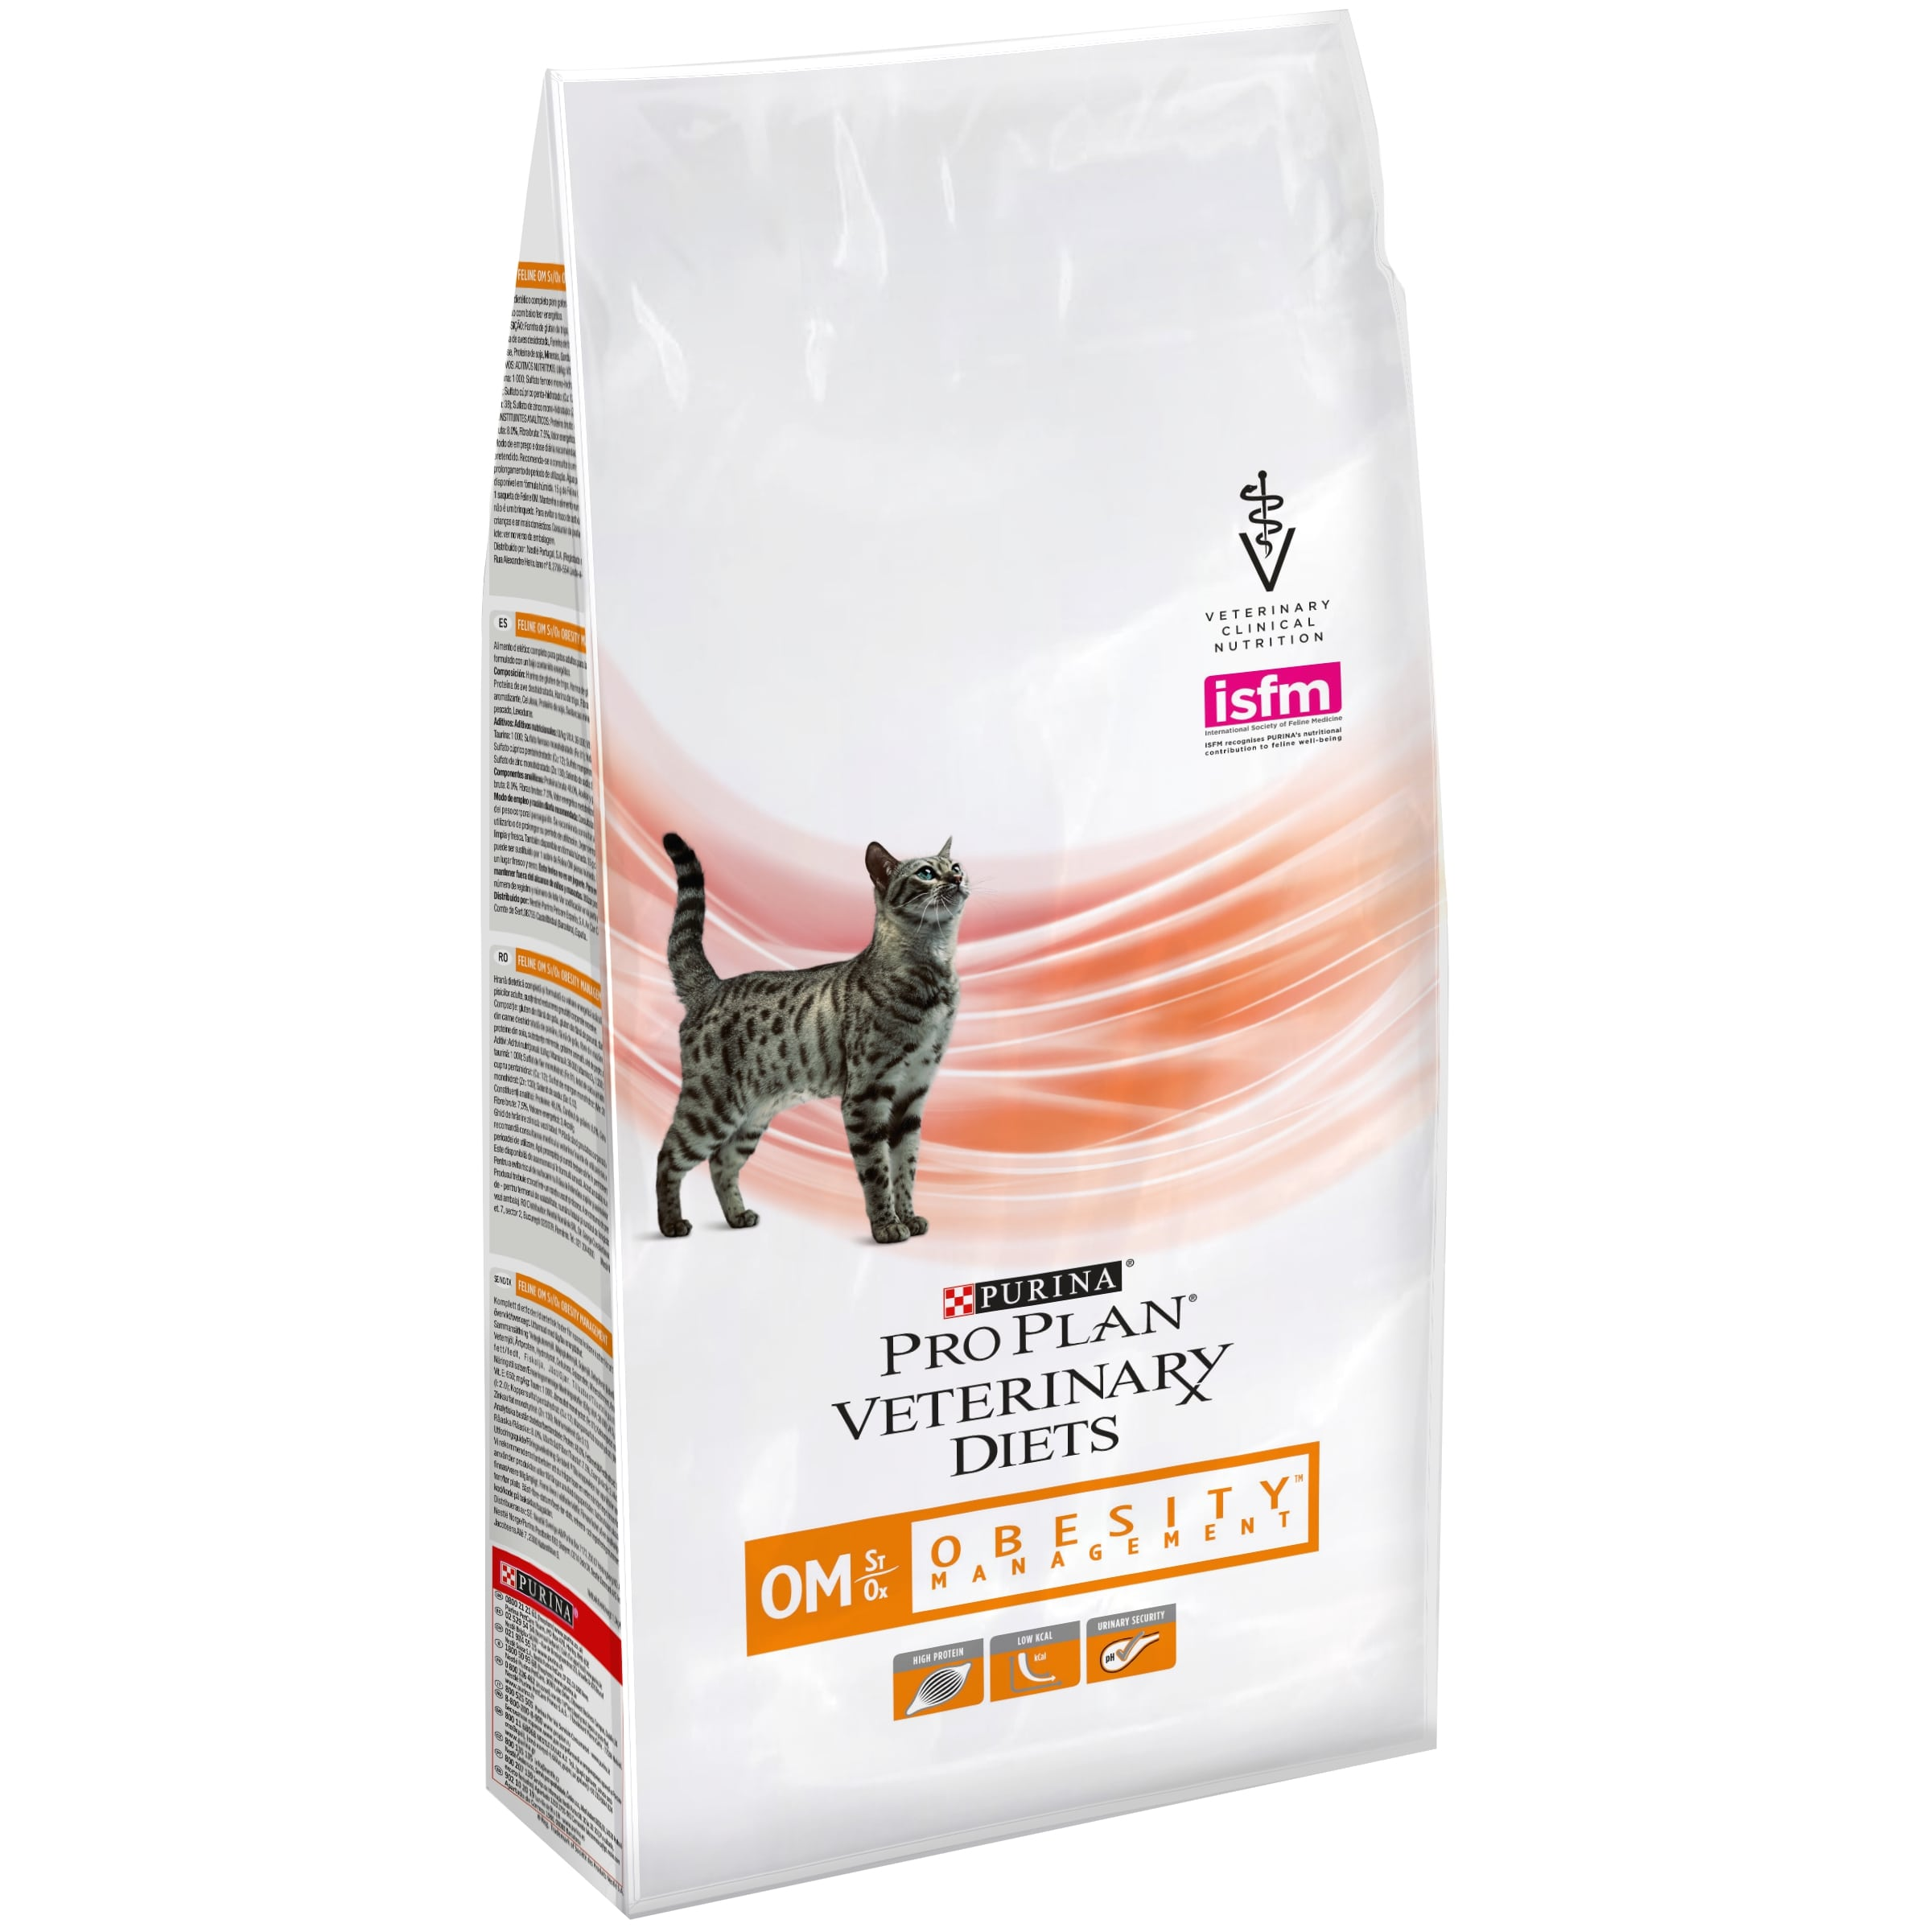 Dry food Pro Plan Veterinary diets OM cat food for obesity, Package, 1.5 kg